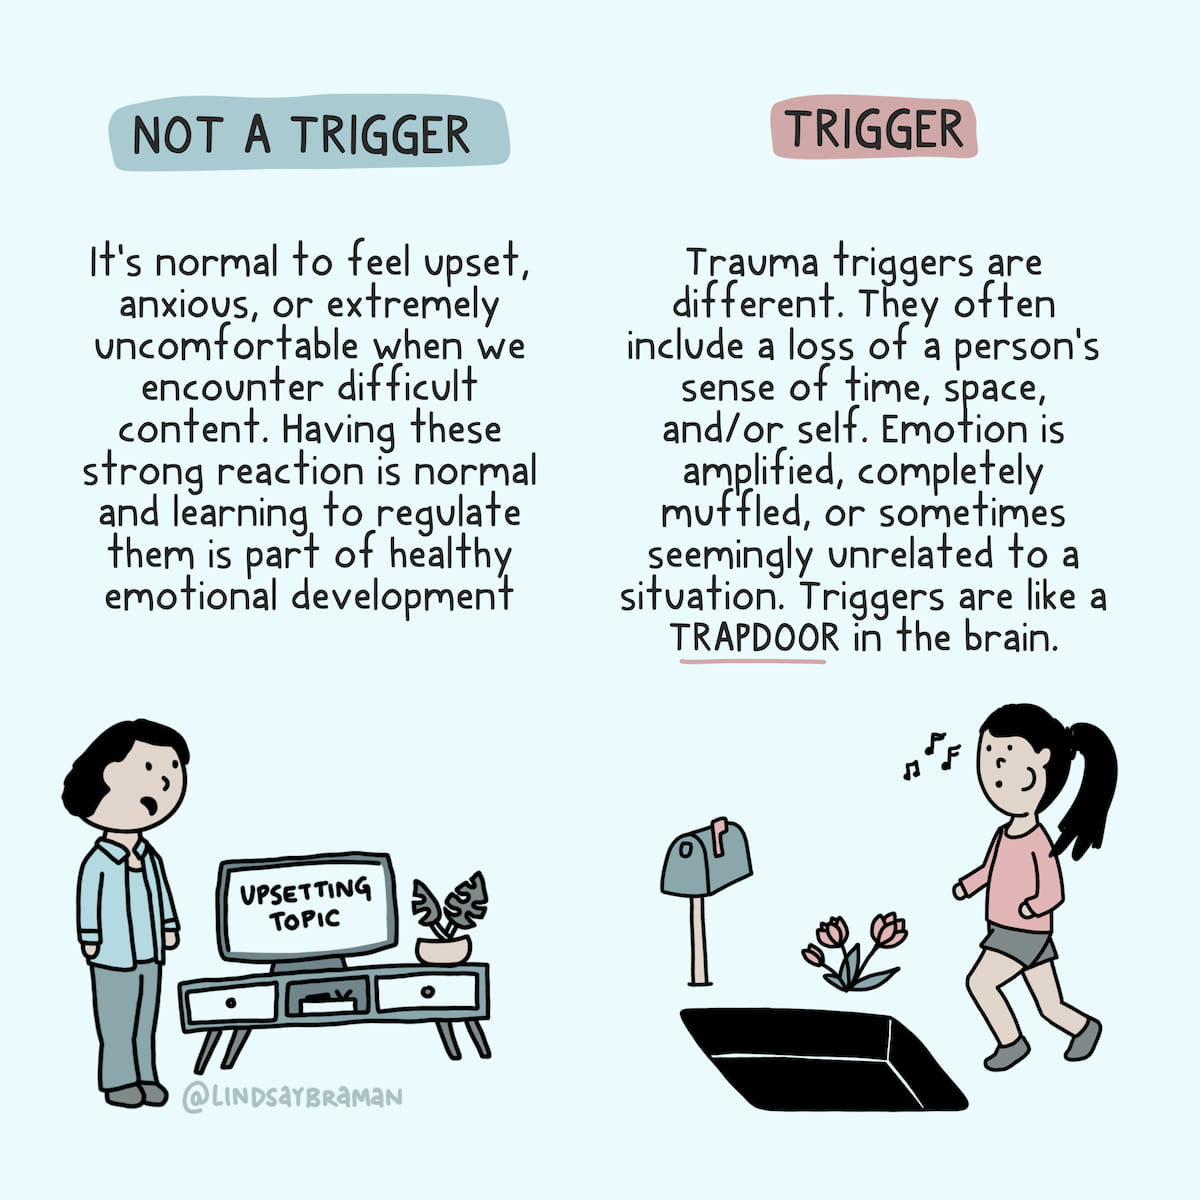 printable infographic describing the difference between a trauma trigger and not a mental health trigger - but just an appropriately upsetting topic.